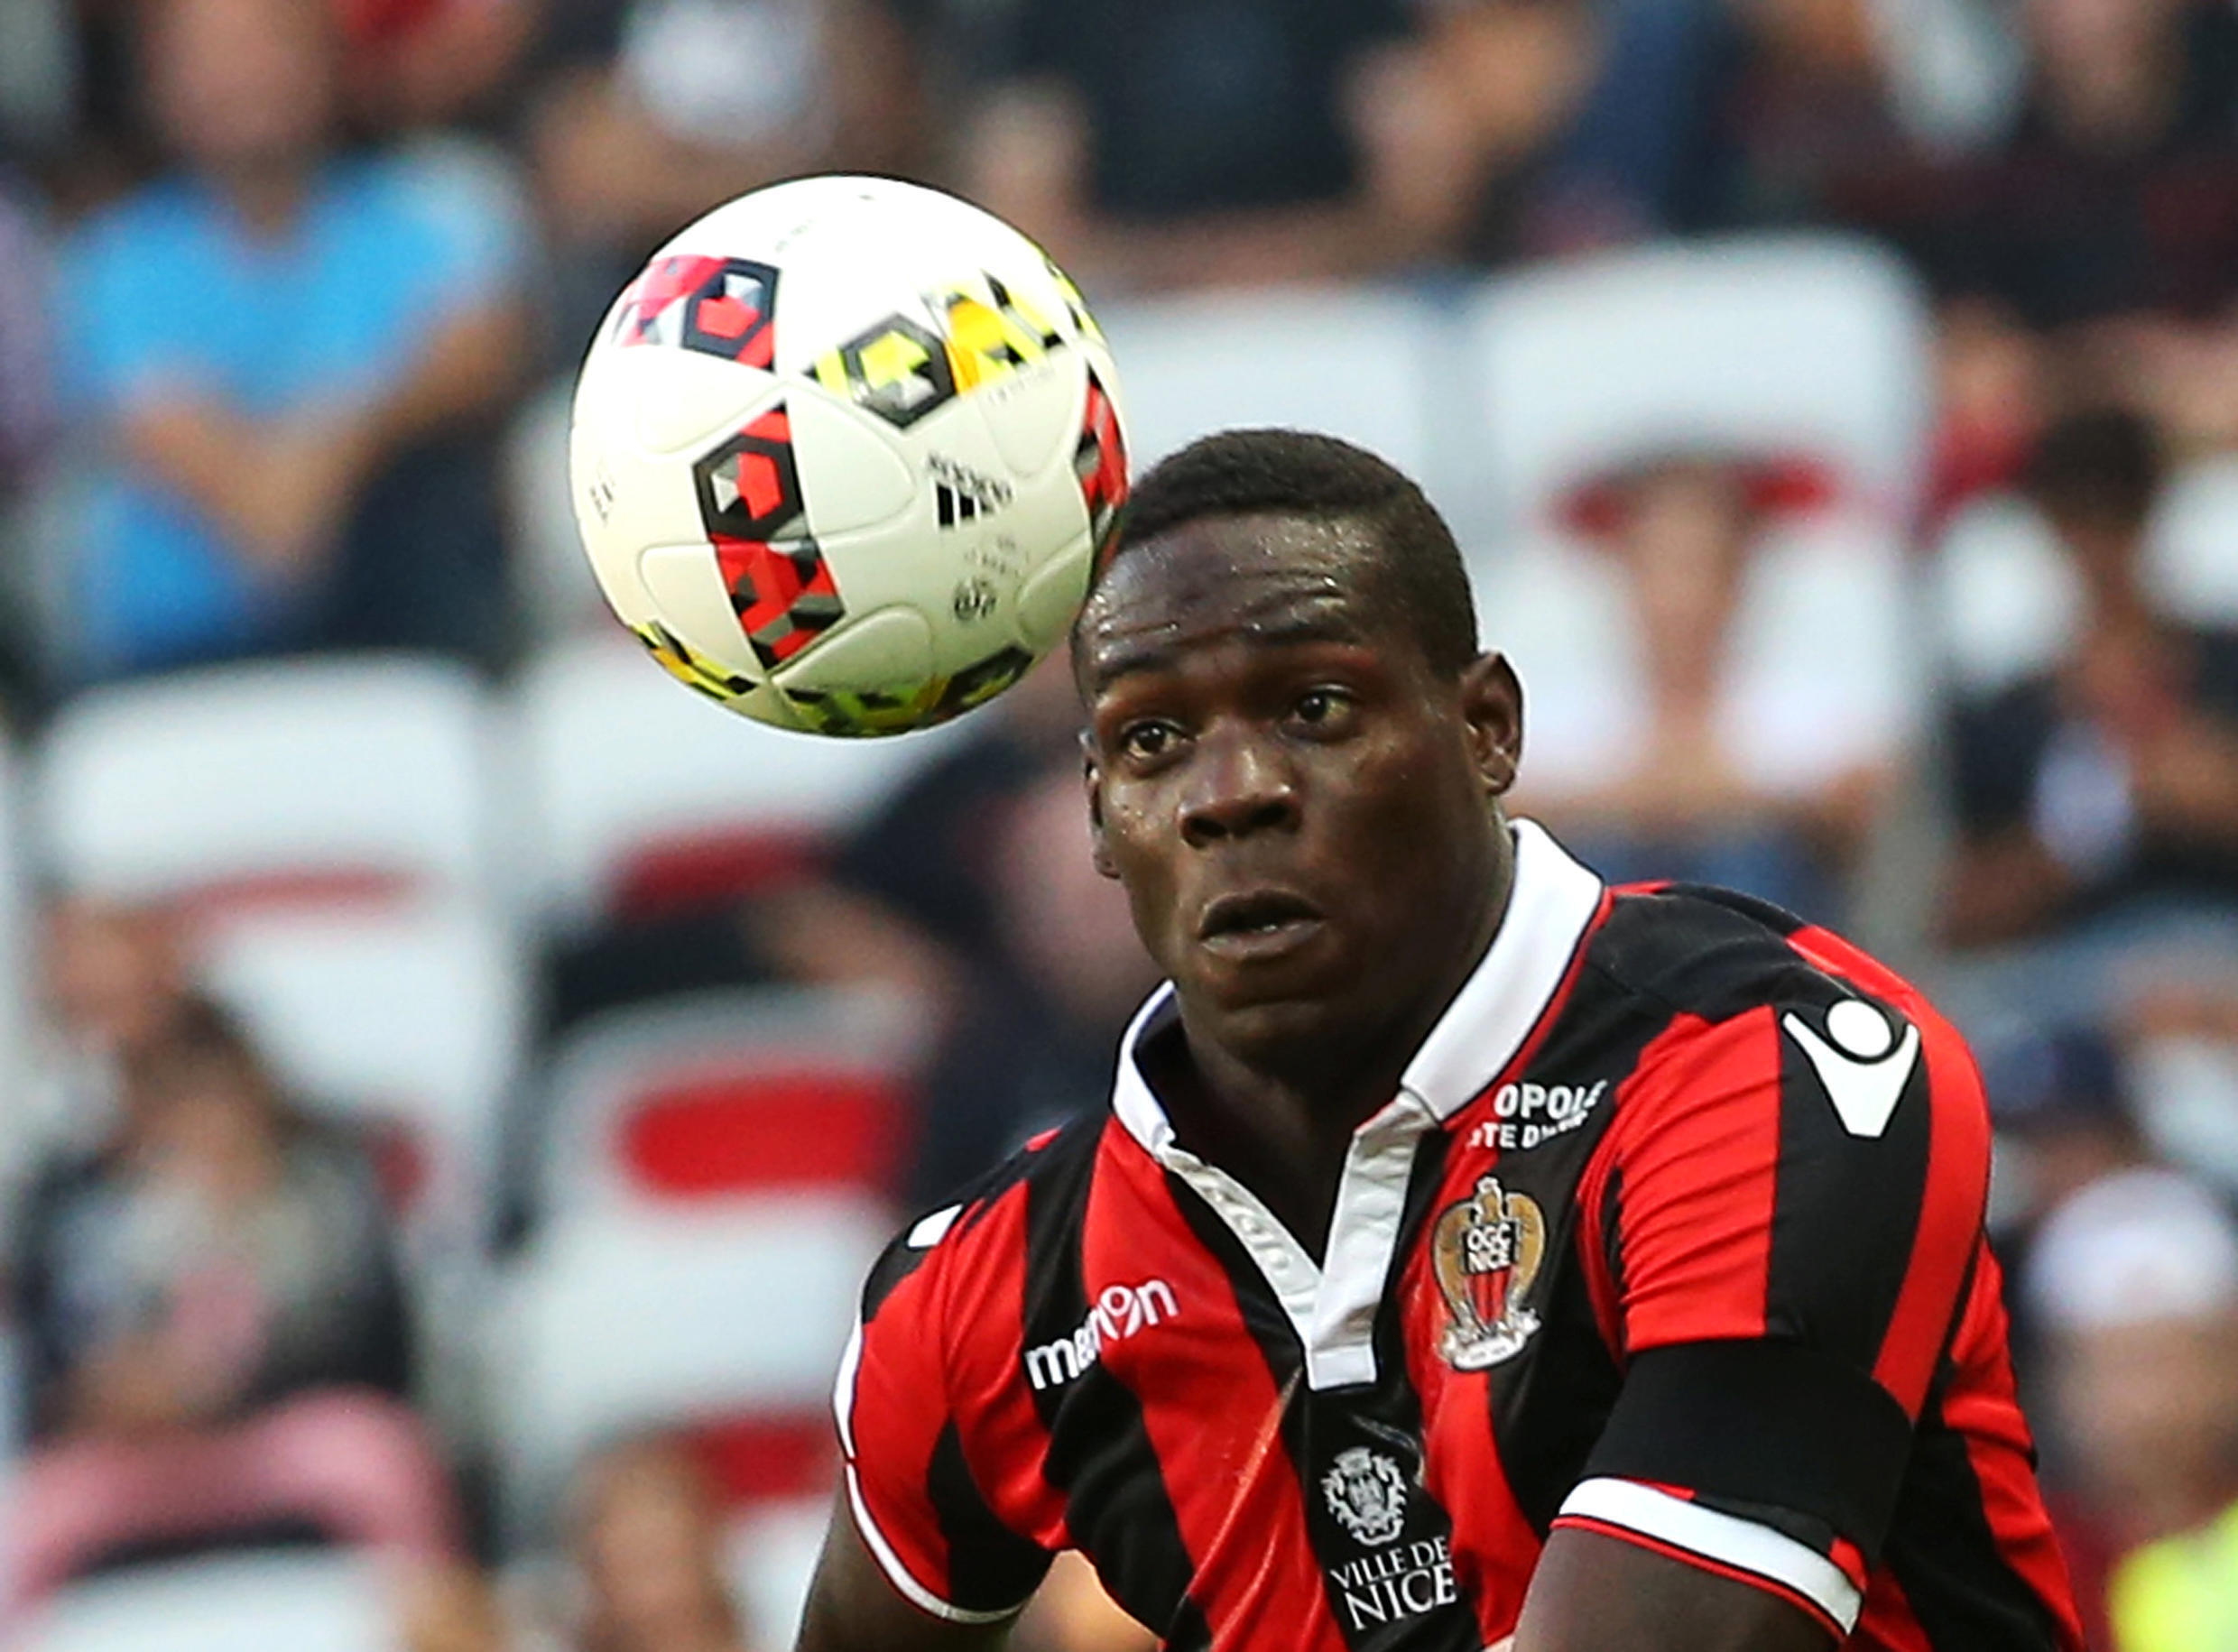 Mario Balotelli missed a penalty in Nice's 2-0 win over Lyon/